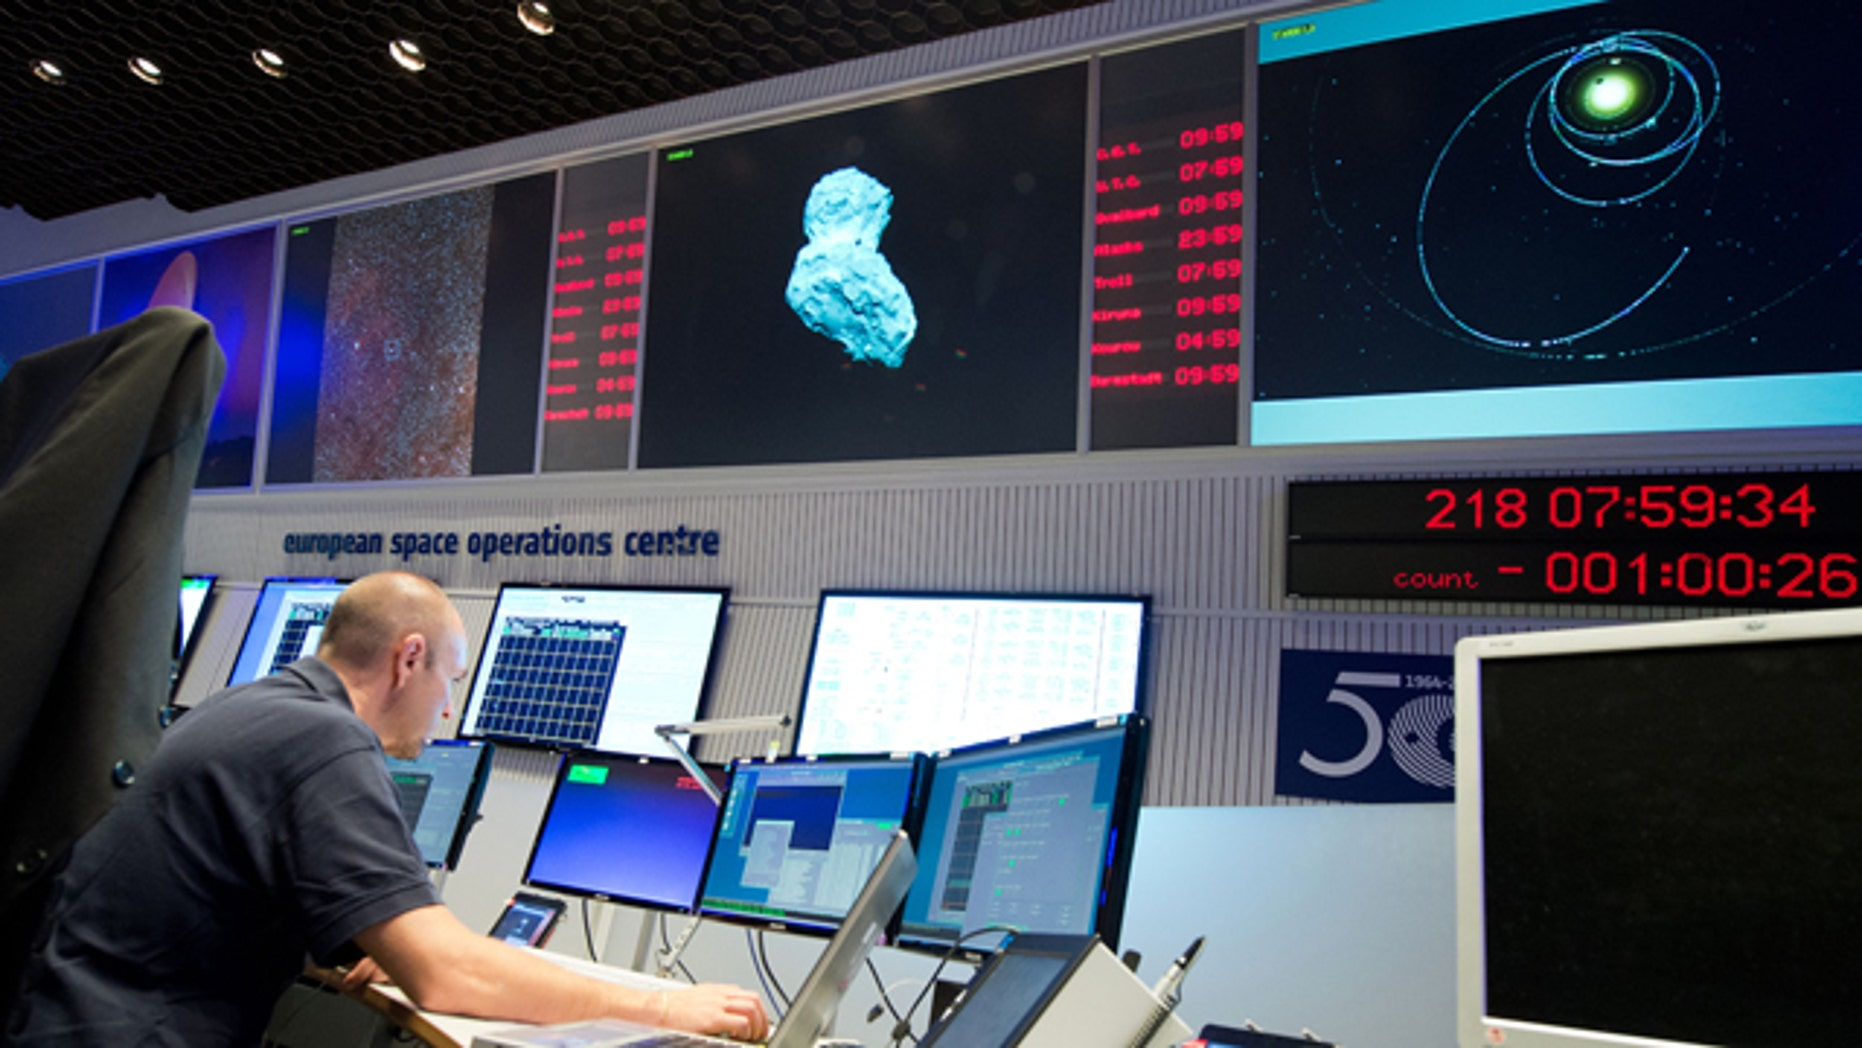 August 6, 2014: An expert watches his screens at the control center of the European Space Agency in Darmstadt, Germany. A mission to land the first space probe on a comet reaches a major milestone when the unmanned Rosetta spacecraft finally catches up with its quarry on Wednesday. (AP Photo/dpa, Boris Roessler)